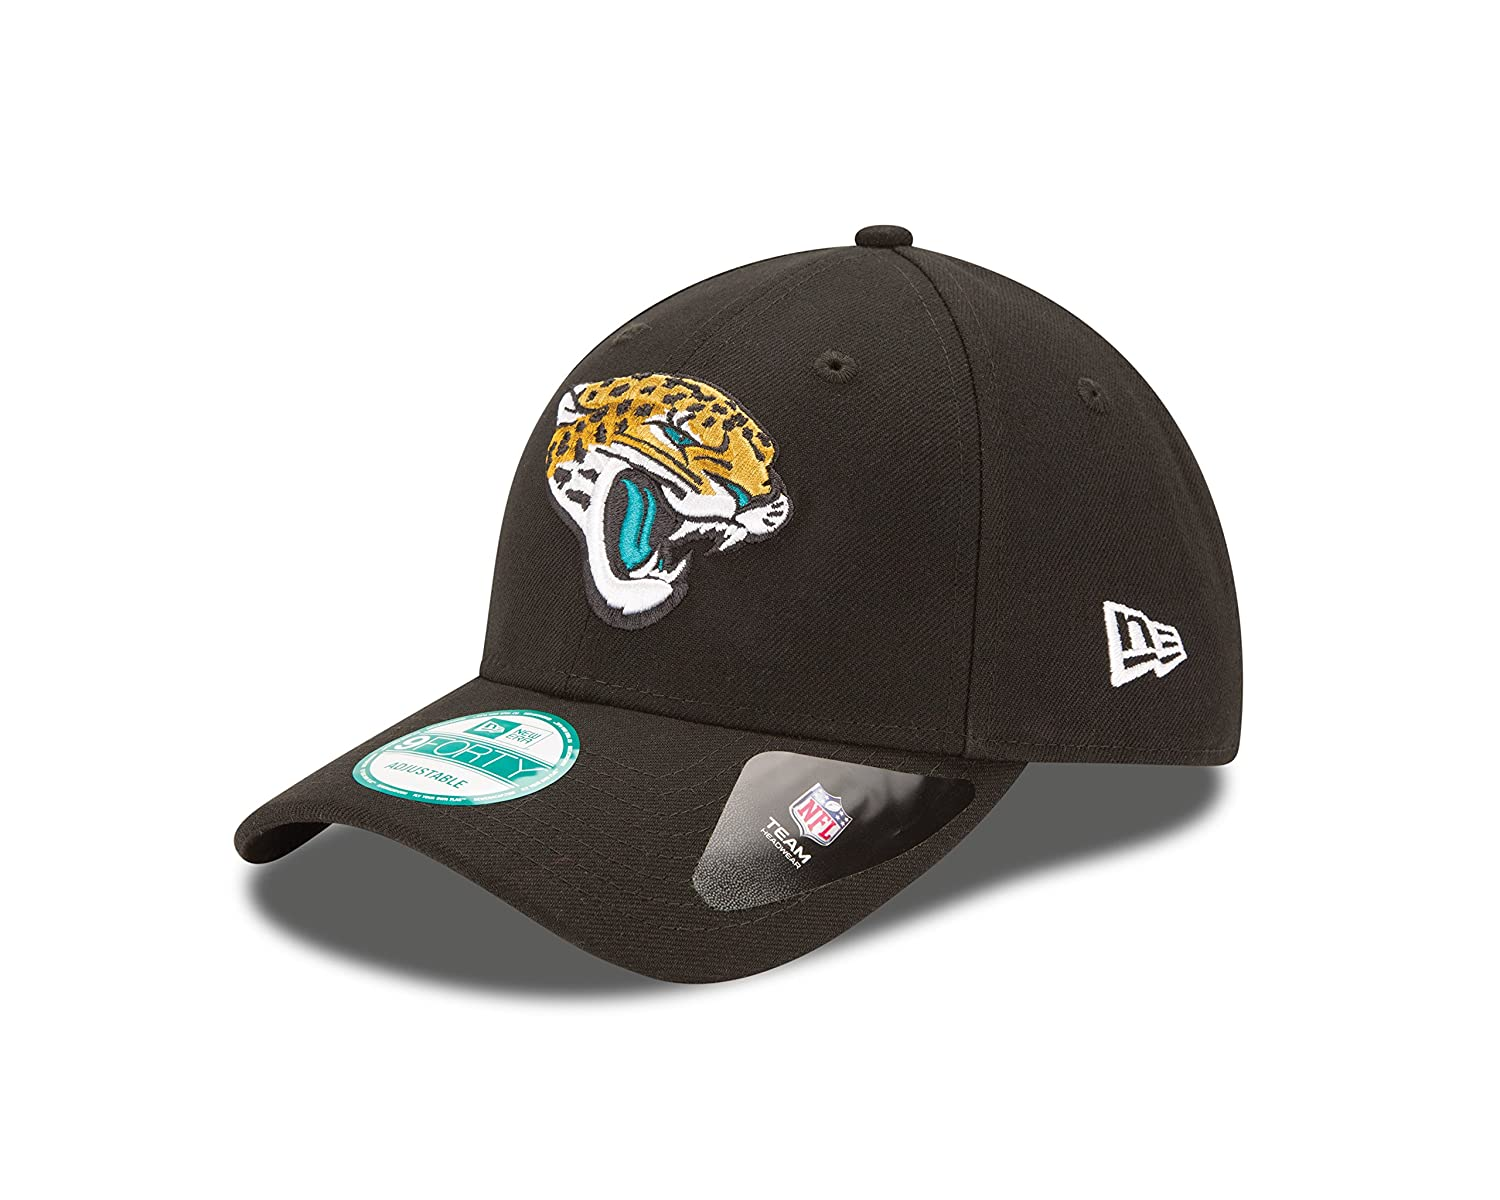 New Era Men s NFL The League 9Forty Jacksonville Jaguars Baseball ... 926409ced29f